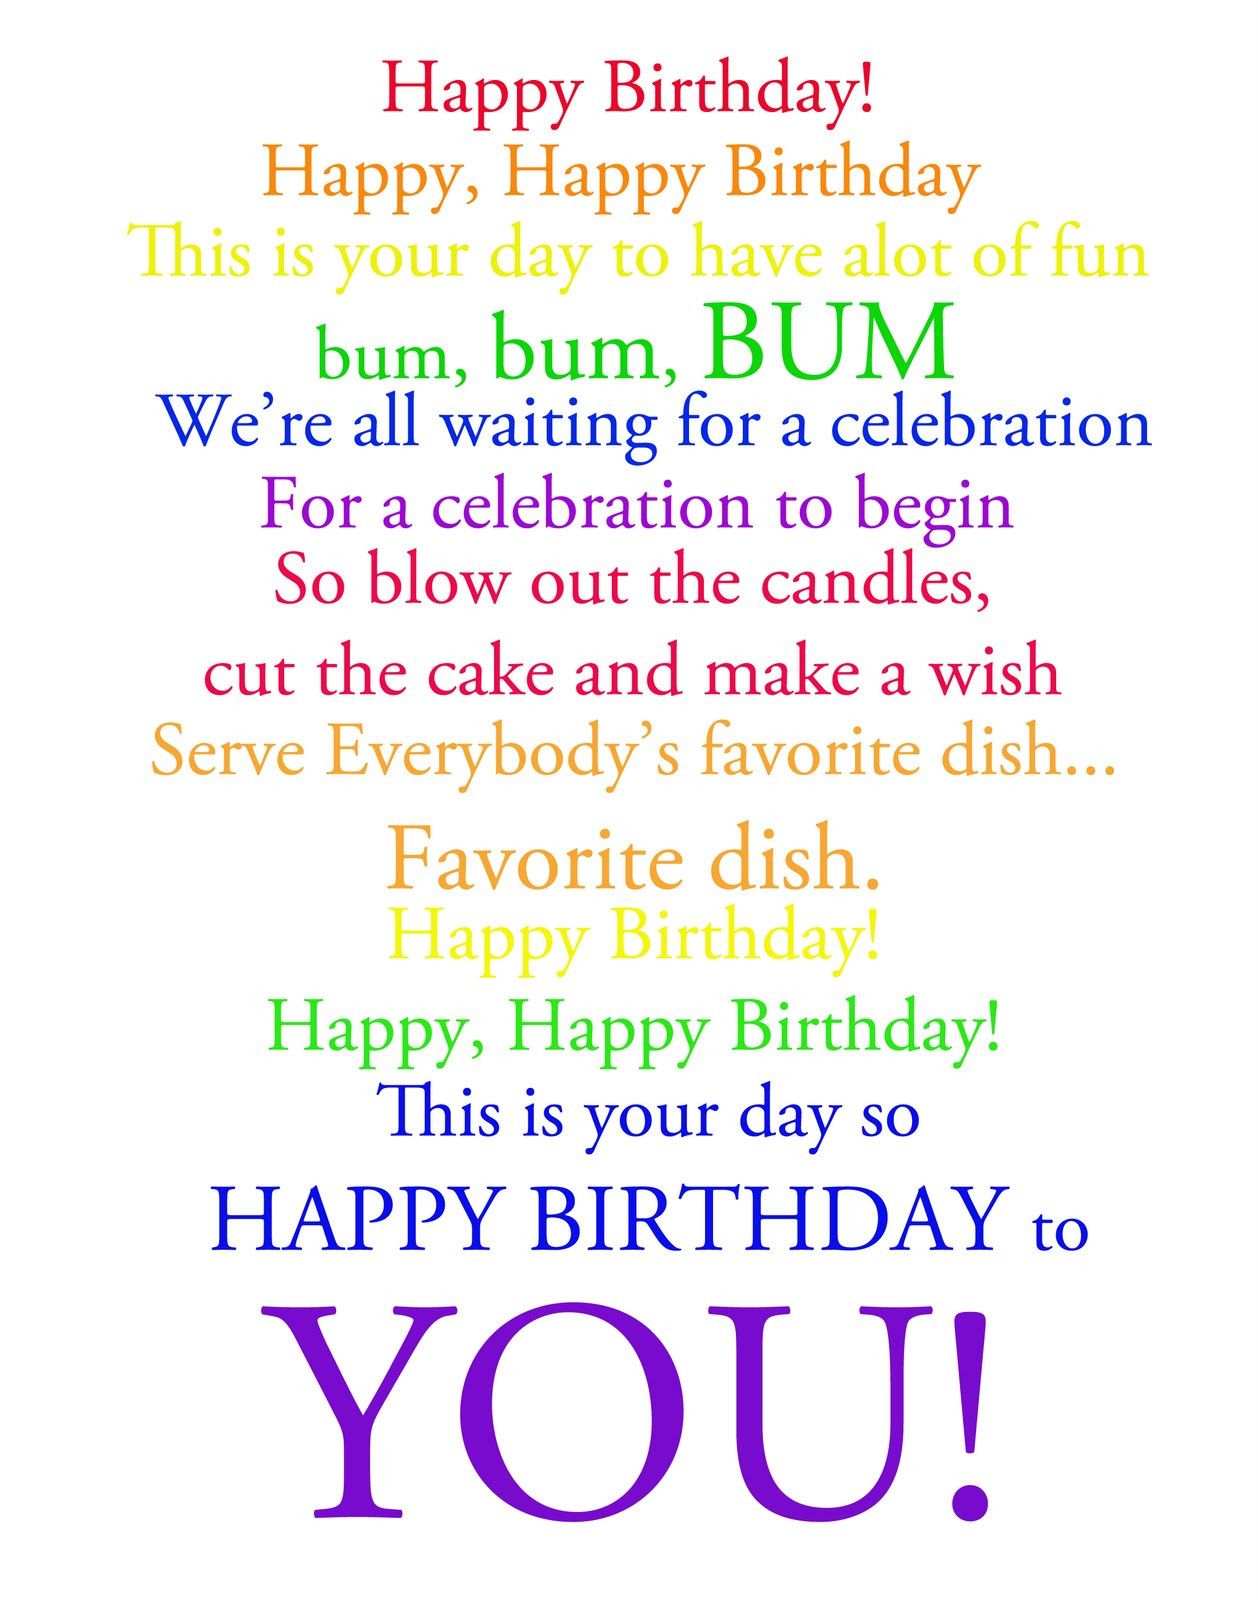 Best ideas about Funny Happy Birthday Songs For Adults . Save or Pin The Project Corner Happy Birthday Happy Happy Birthday Now.